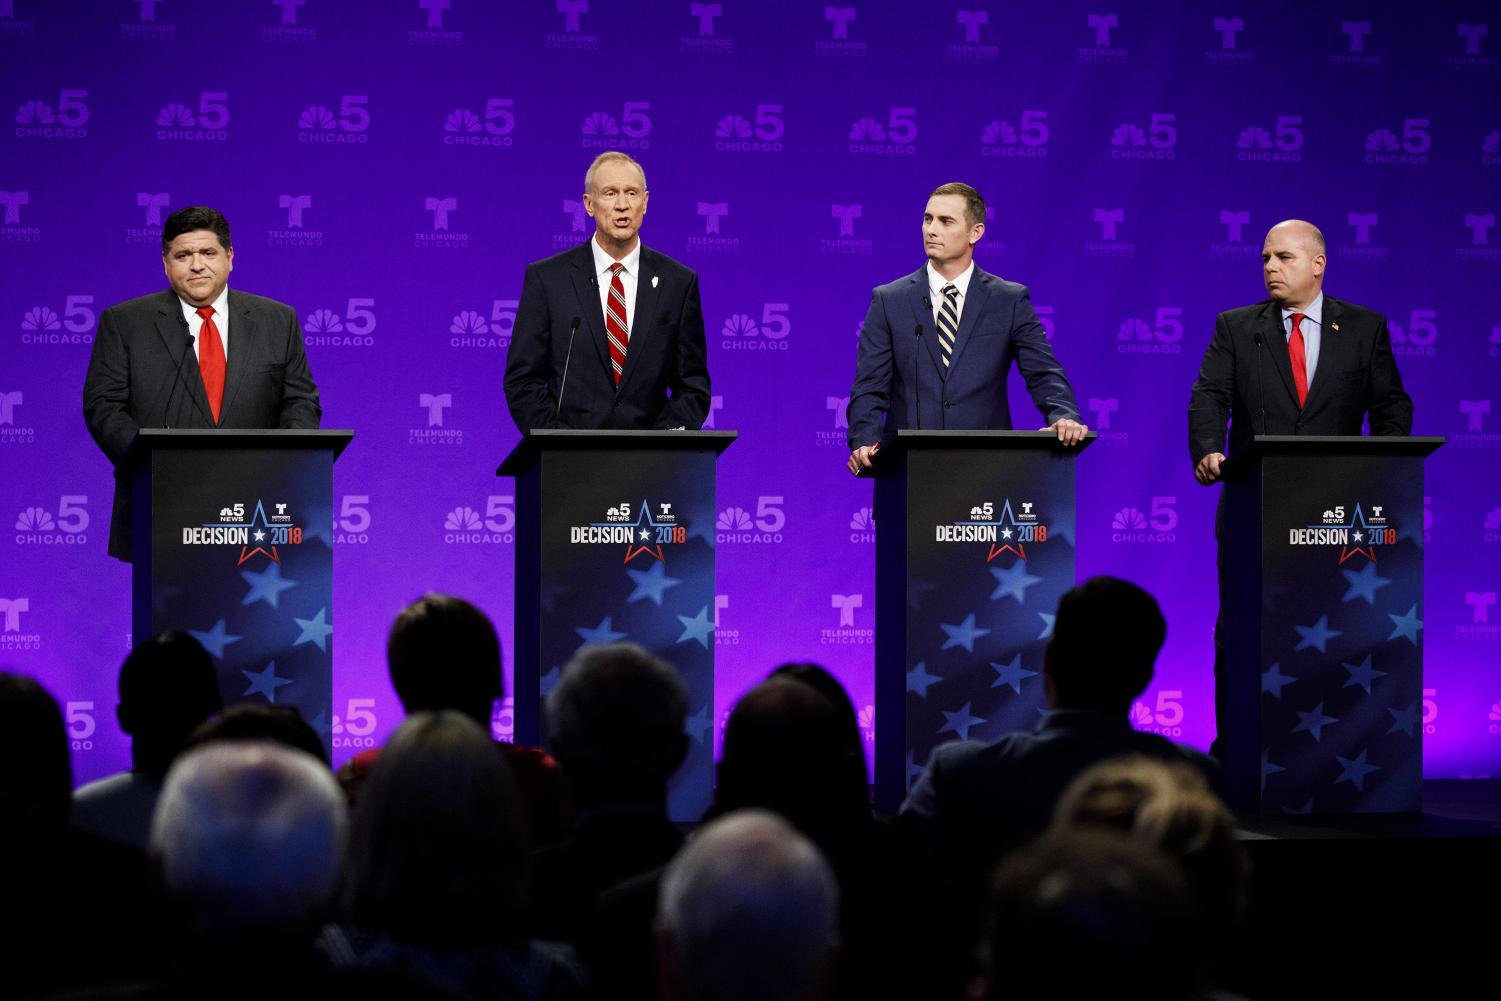 From left, candidate J.B. Pritzker, Illinois Gov. Bruce Rauner, candidate Kash Jackson, and candidate State Sen. Sam McCann attend a televised debate at the NBC studios in Chicago on Thursday, Sept. 20, 2018. (Armando L. Sanchez/Chicago Tribune/TNS)